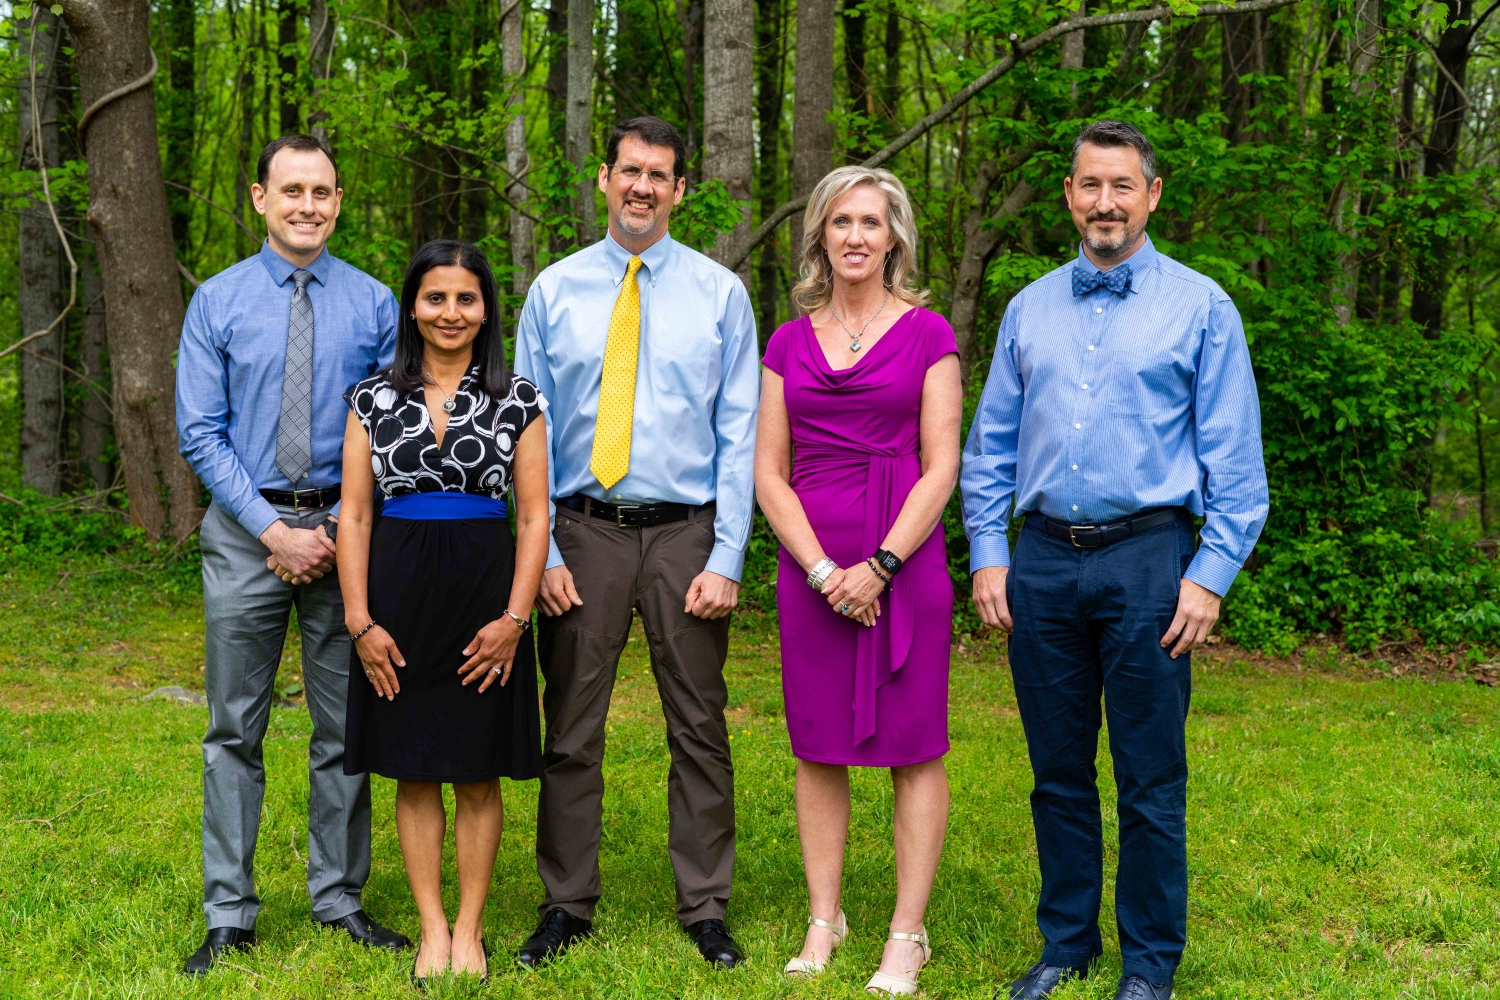 3 Neurologists & 2 Physicians Assistants from Asheville Neurology Specialists Standing In The Woods